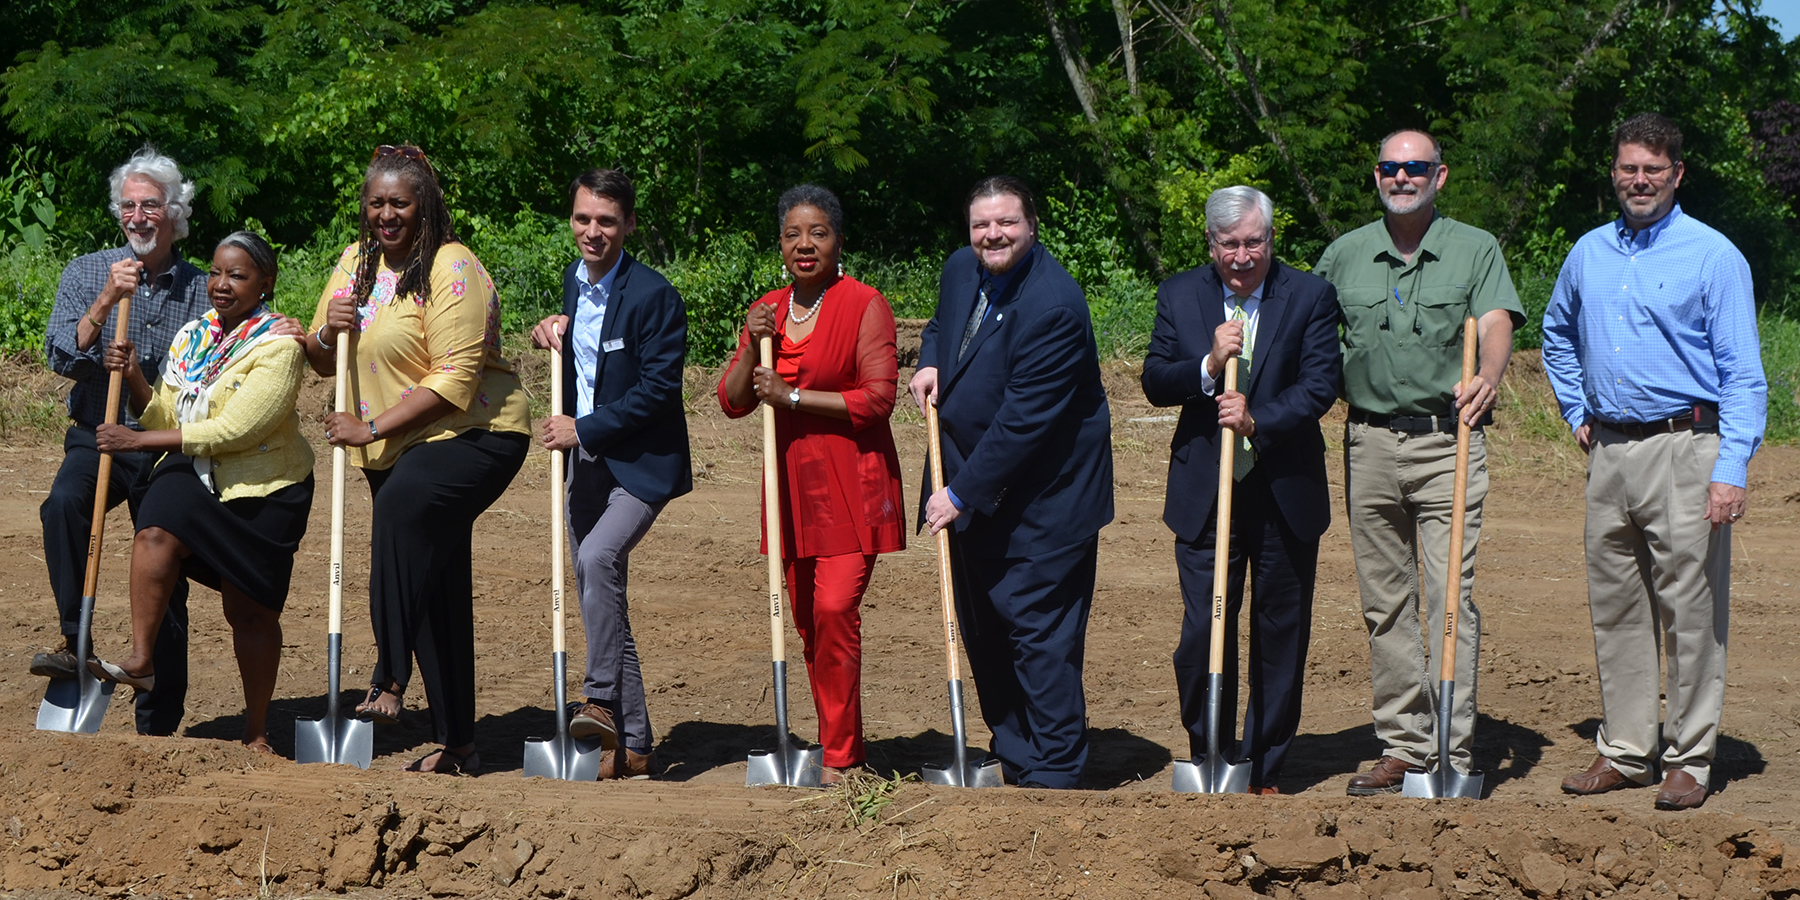 Affordable Housing Complex for Seniors Breaks Ground